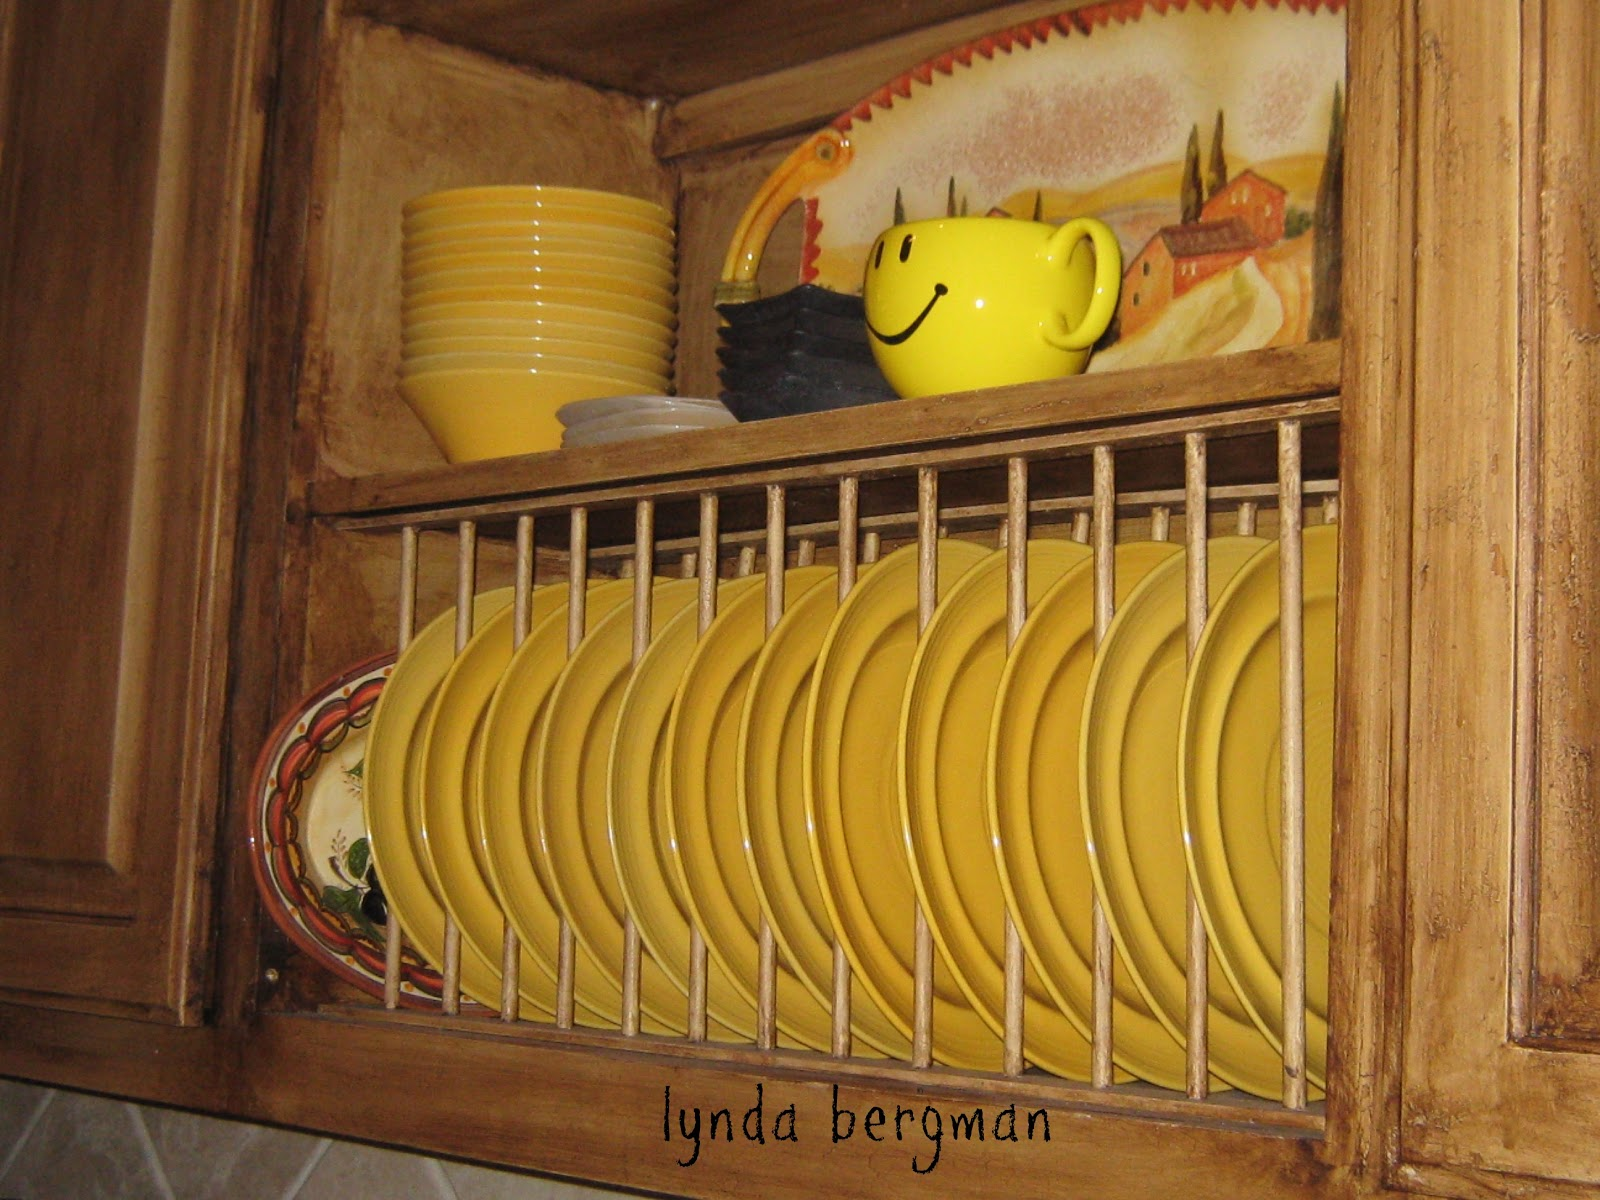 HOW TO BUILD u0026 INSTALL A PLATE RACK FOR A CABINET -TUTORIAL & LYNDA BERGMAN DECORATIVE ARTISAN: HOW TO BUILD u0026 INSTALL A PLATE ...